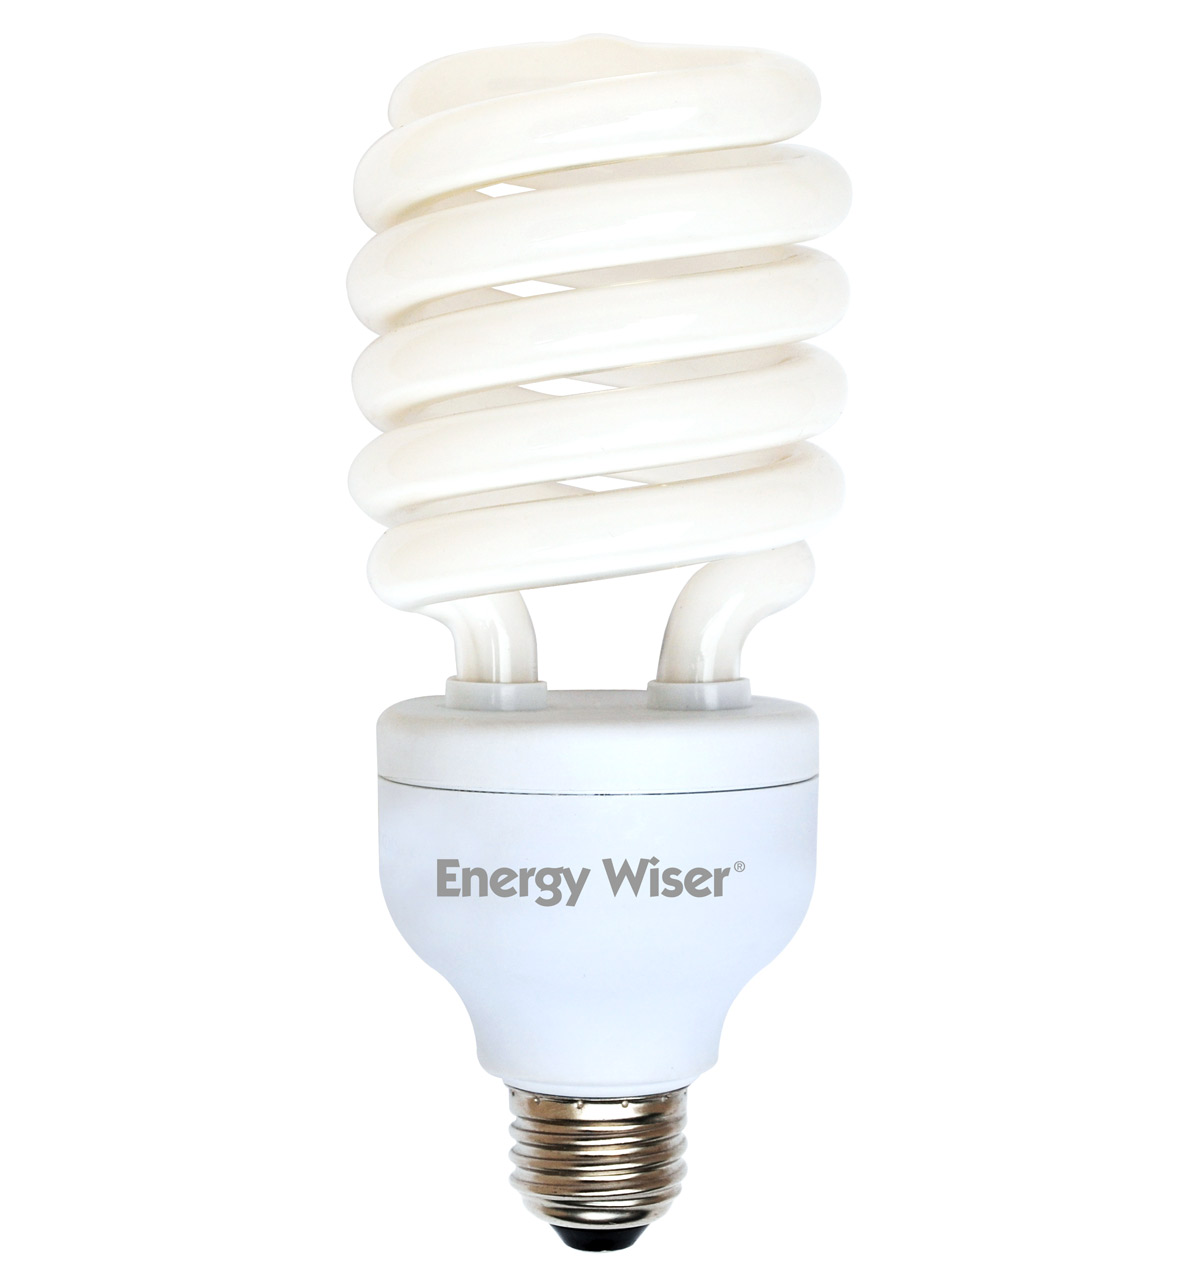 Compact fluorescent bulbs products tangyuk lighting co in our products in compact fluorescent bulbs arubaitofo Gallery